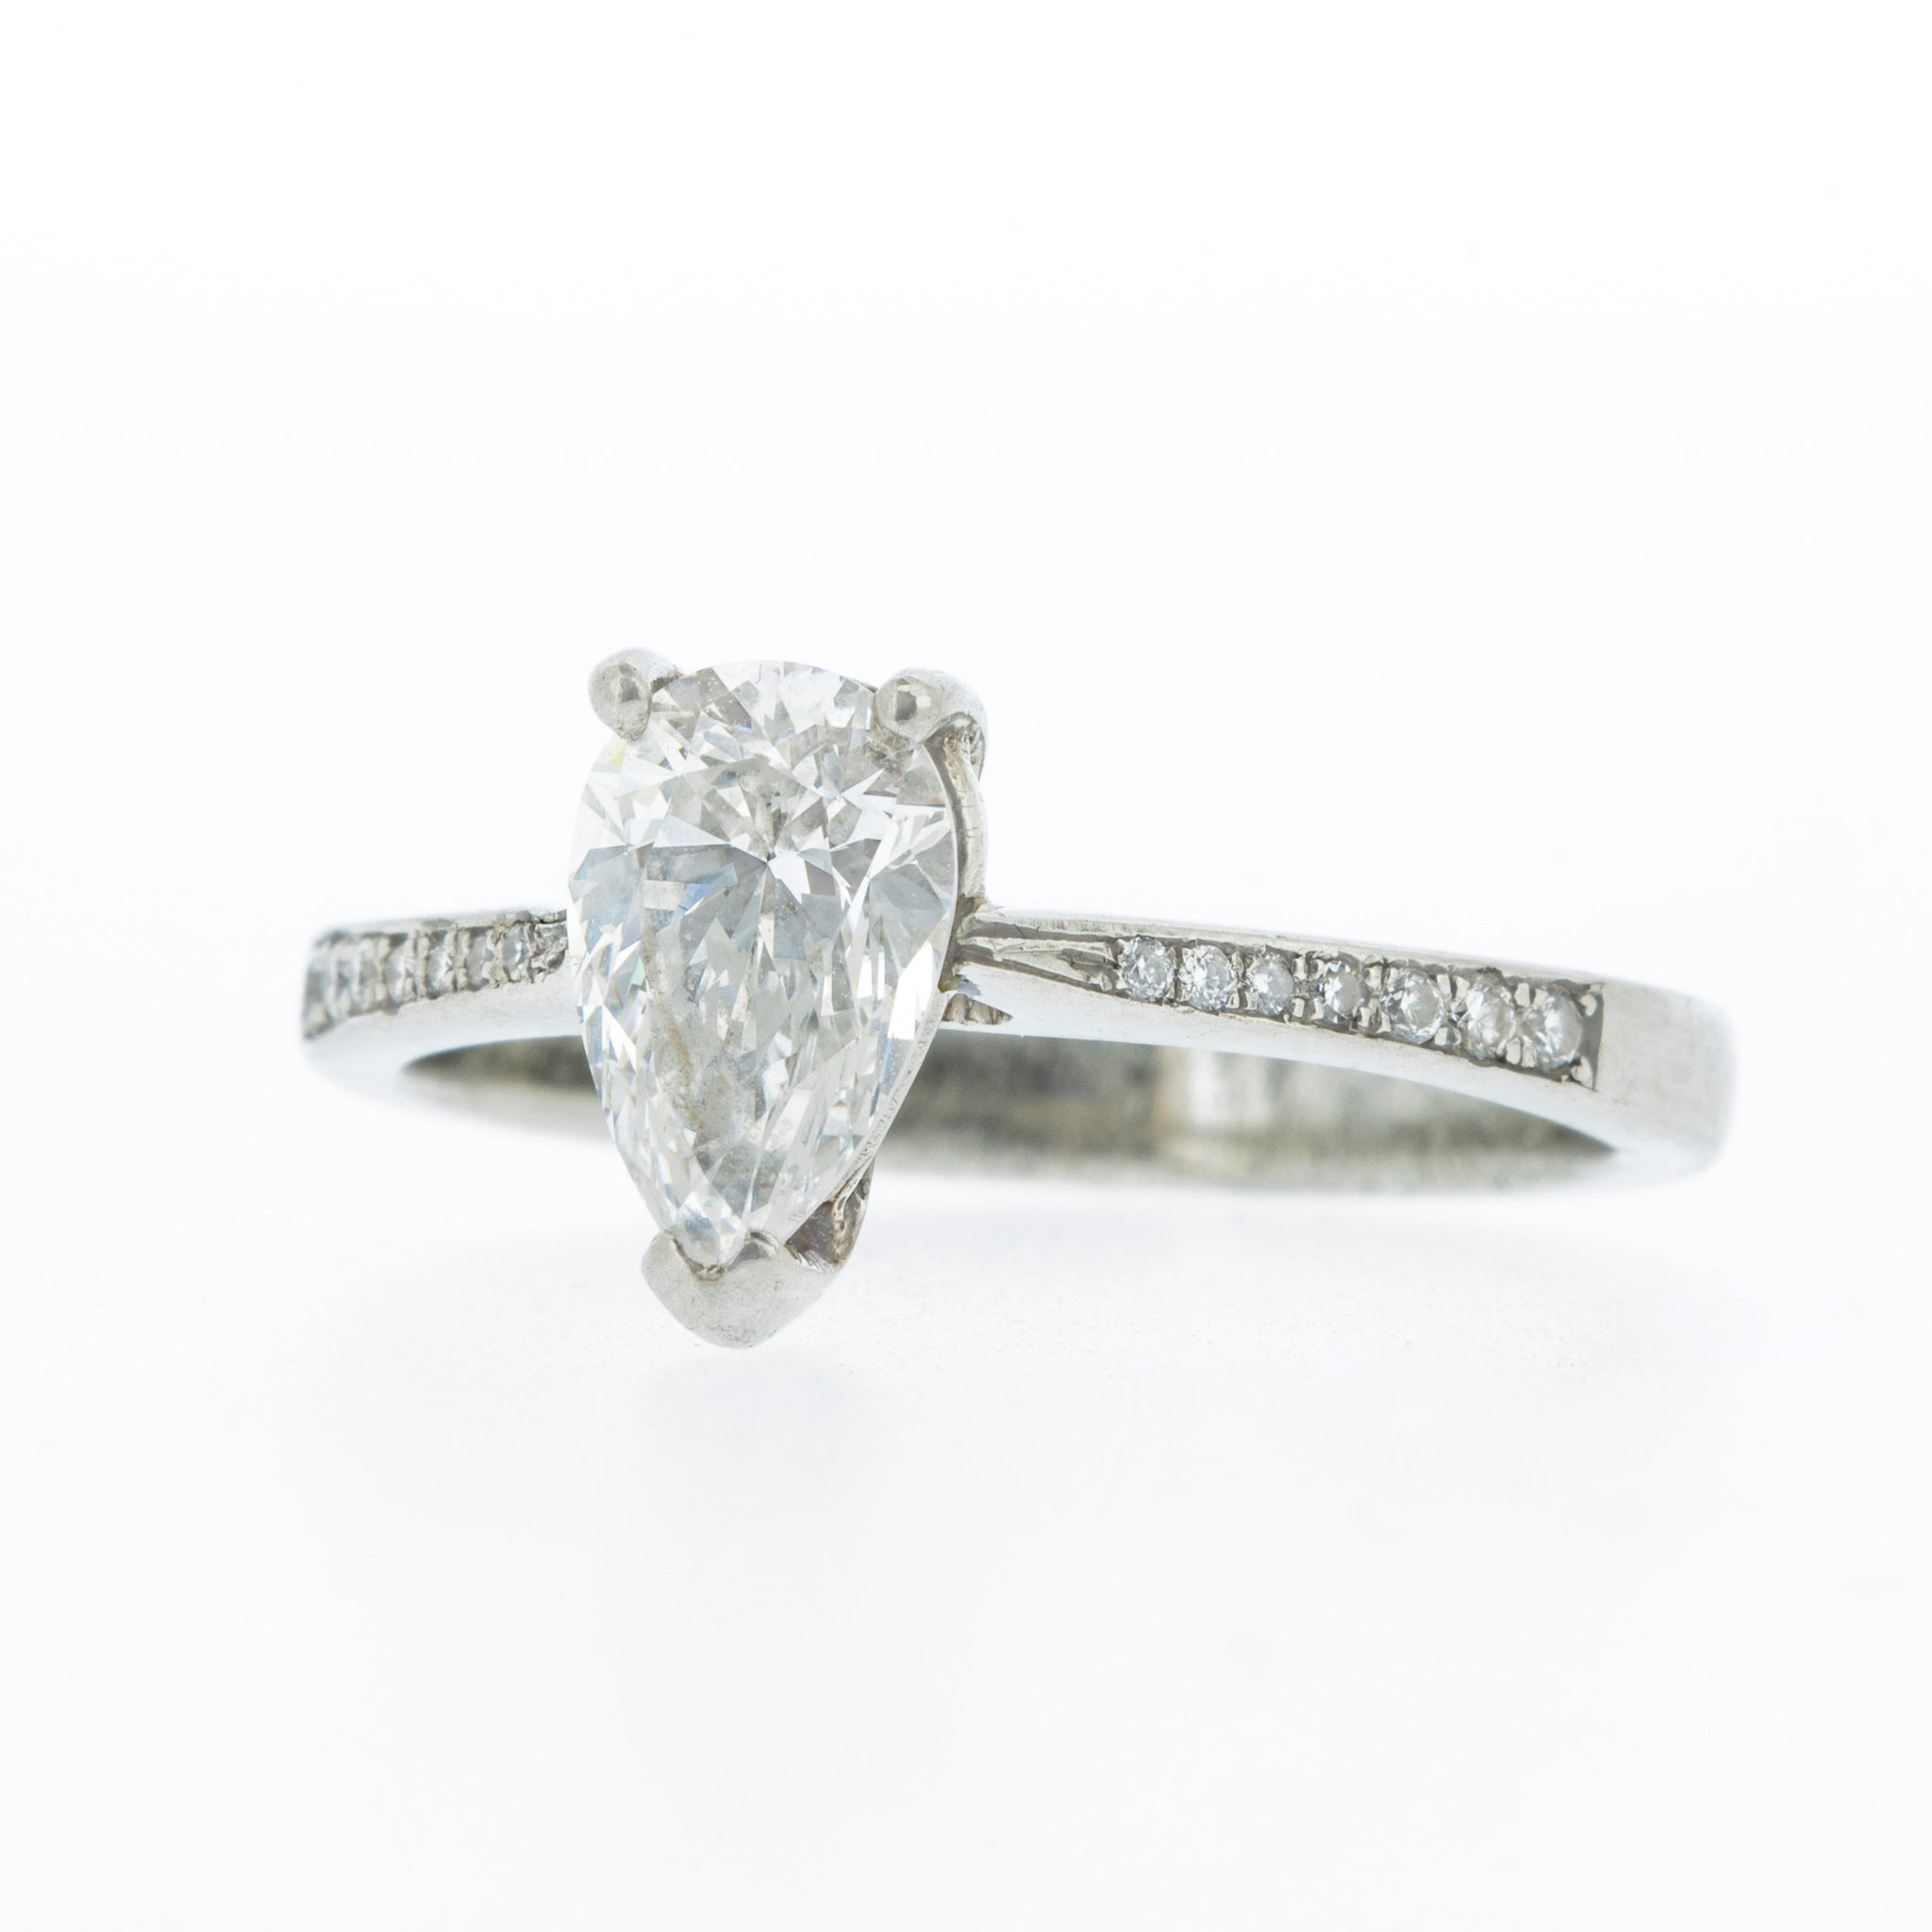 Pear-shape Solitaire